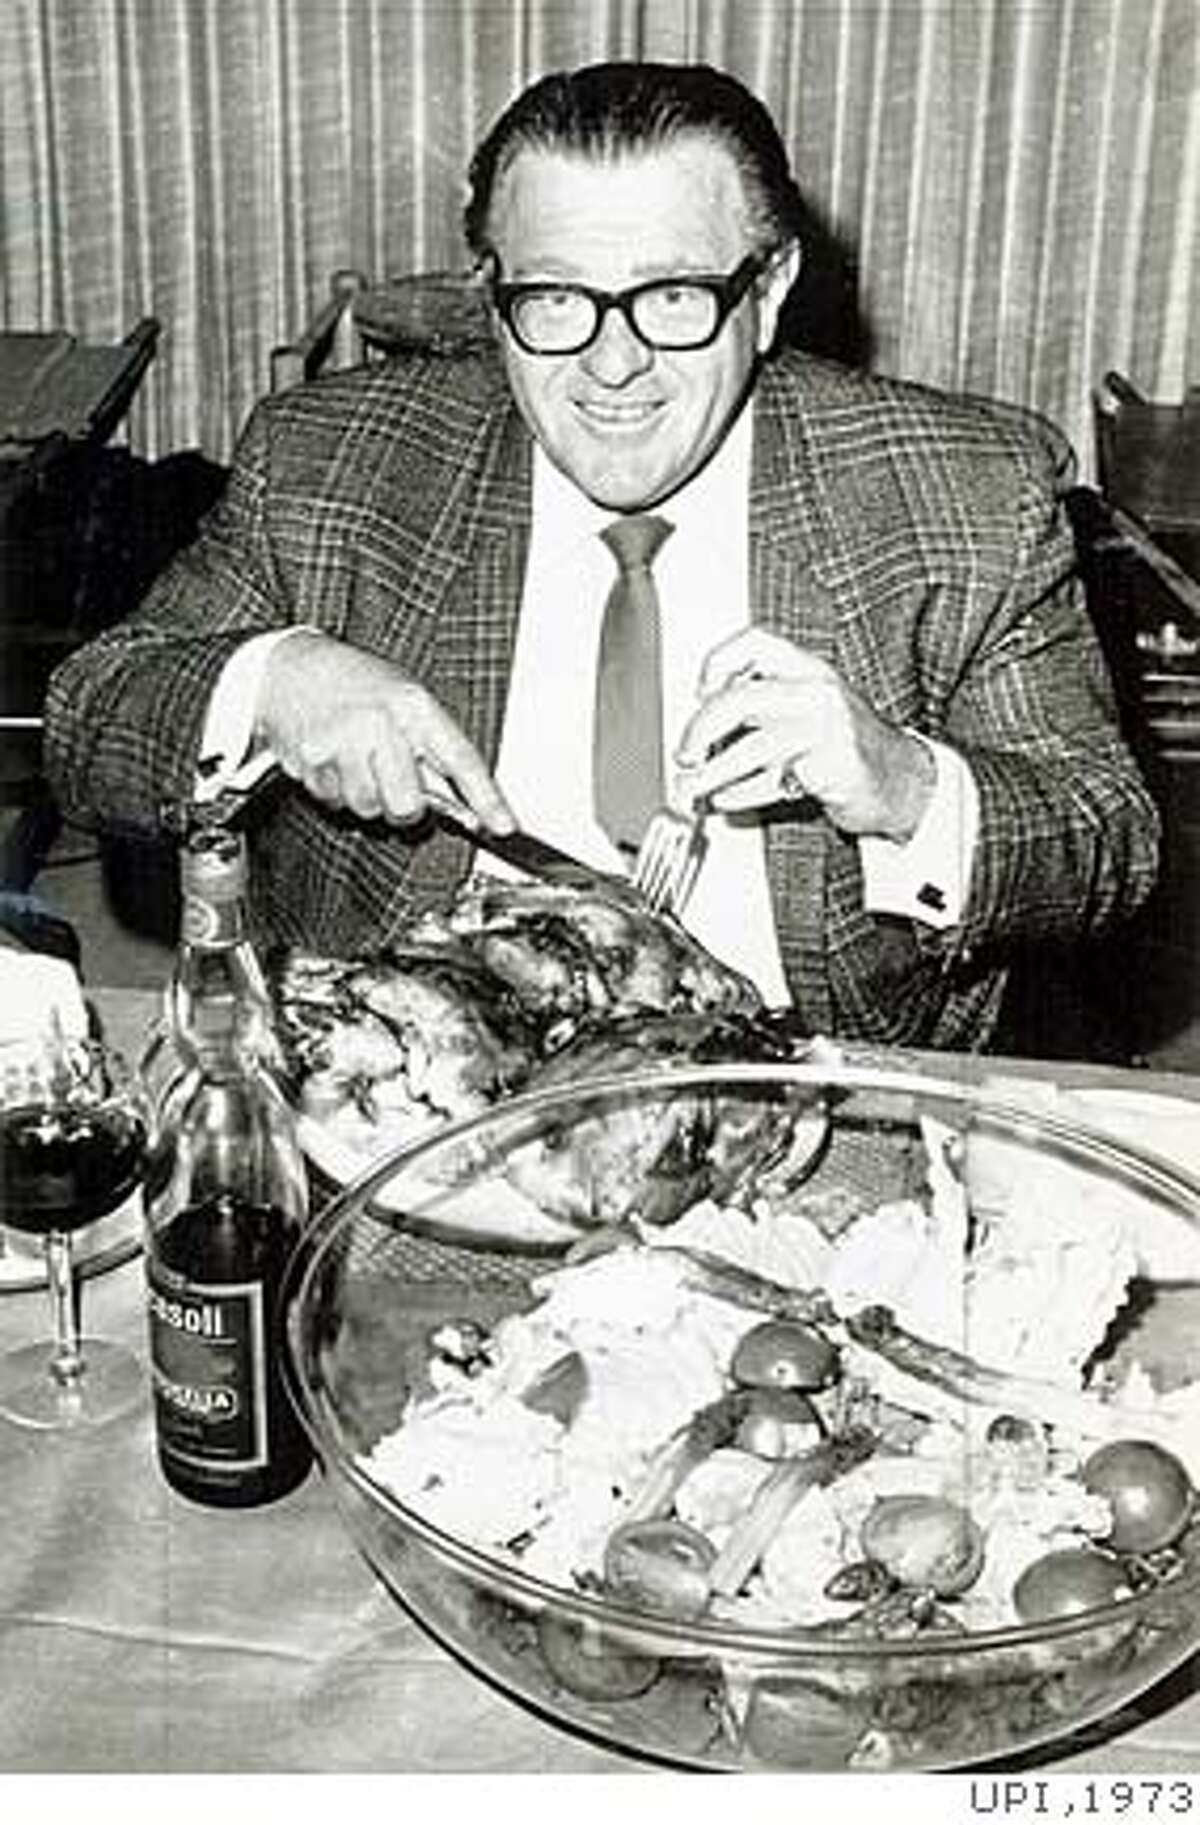 """Eddie """"Bozo"""" Miller enjoys a meal. He held records for eating 27 chickens at a sitting and drinking two quarts of liquor in an hour. UPI photo, 1973"""